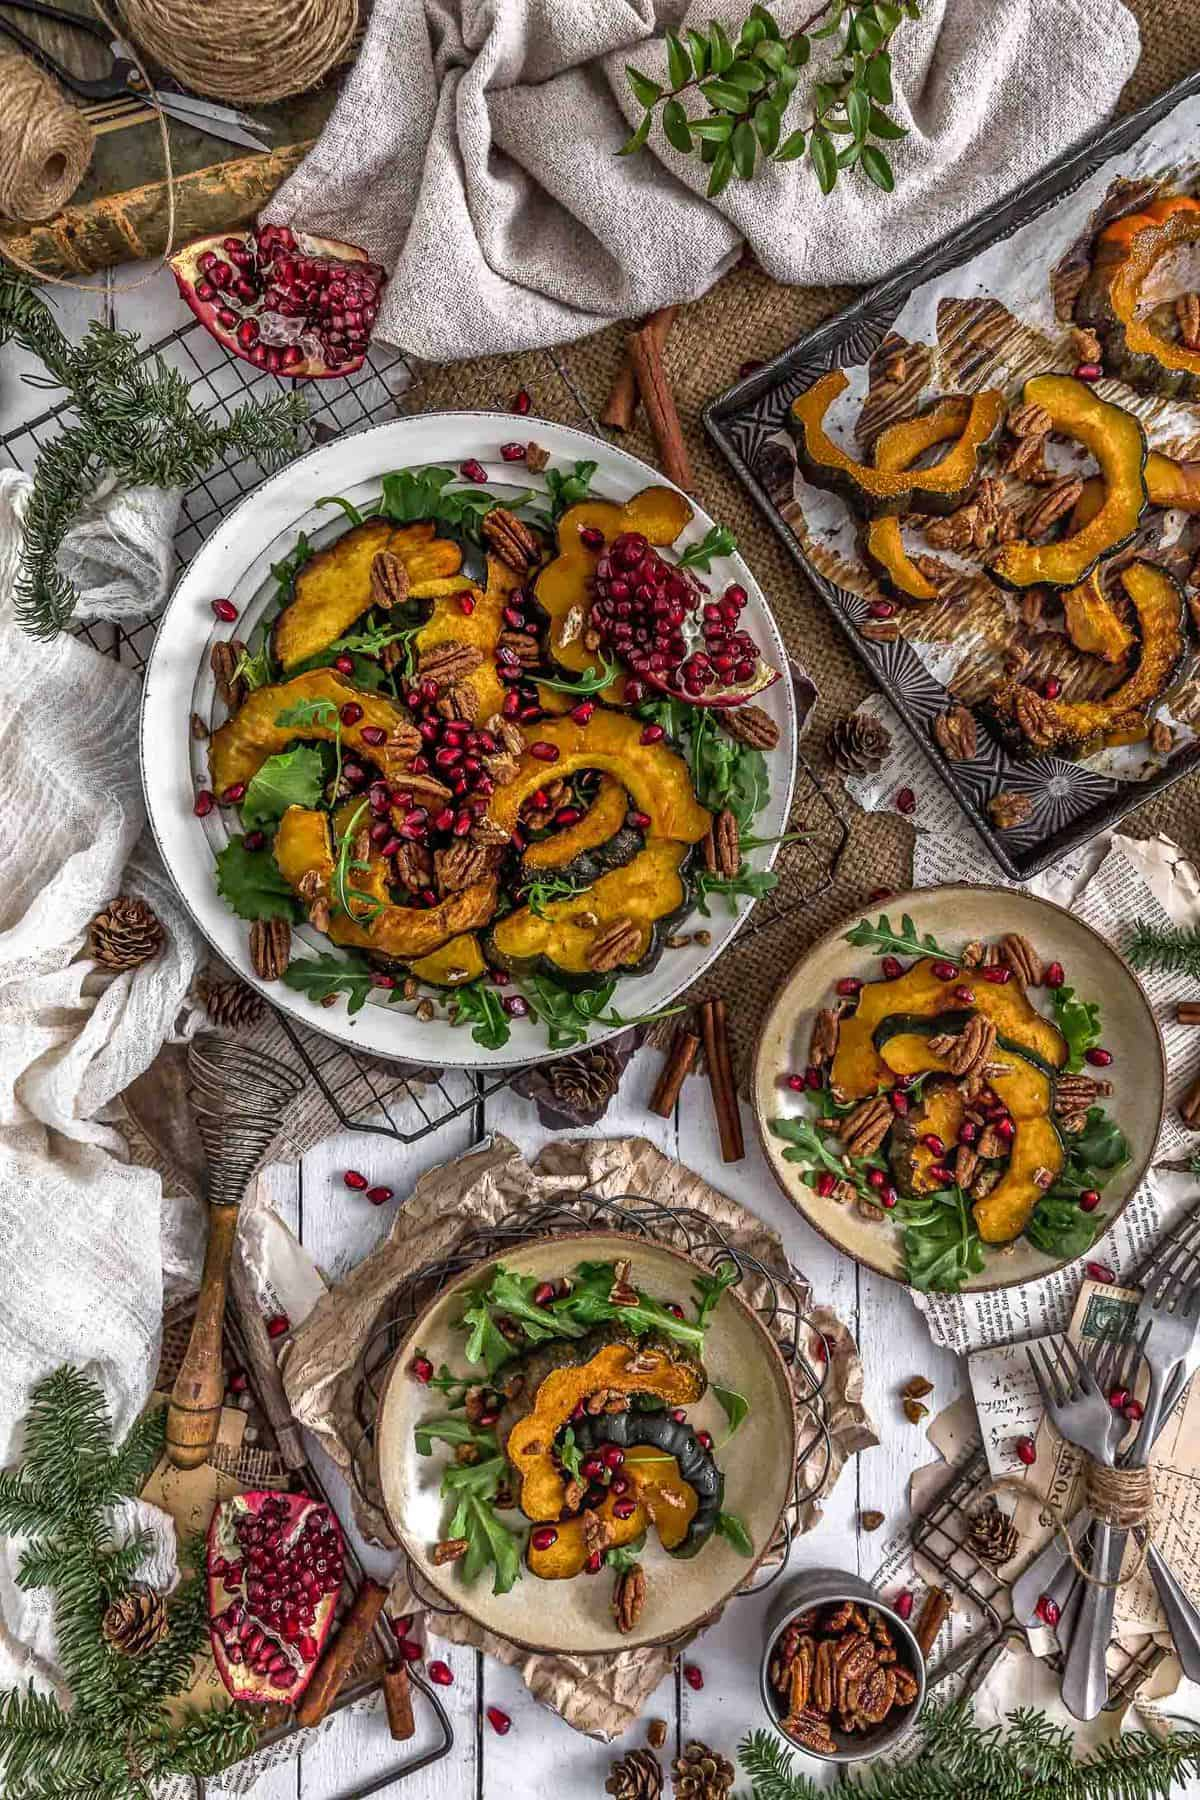 Tablescape of Roasted Maple Glazed Acorn Squash with Cinnamon Pecans